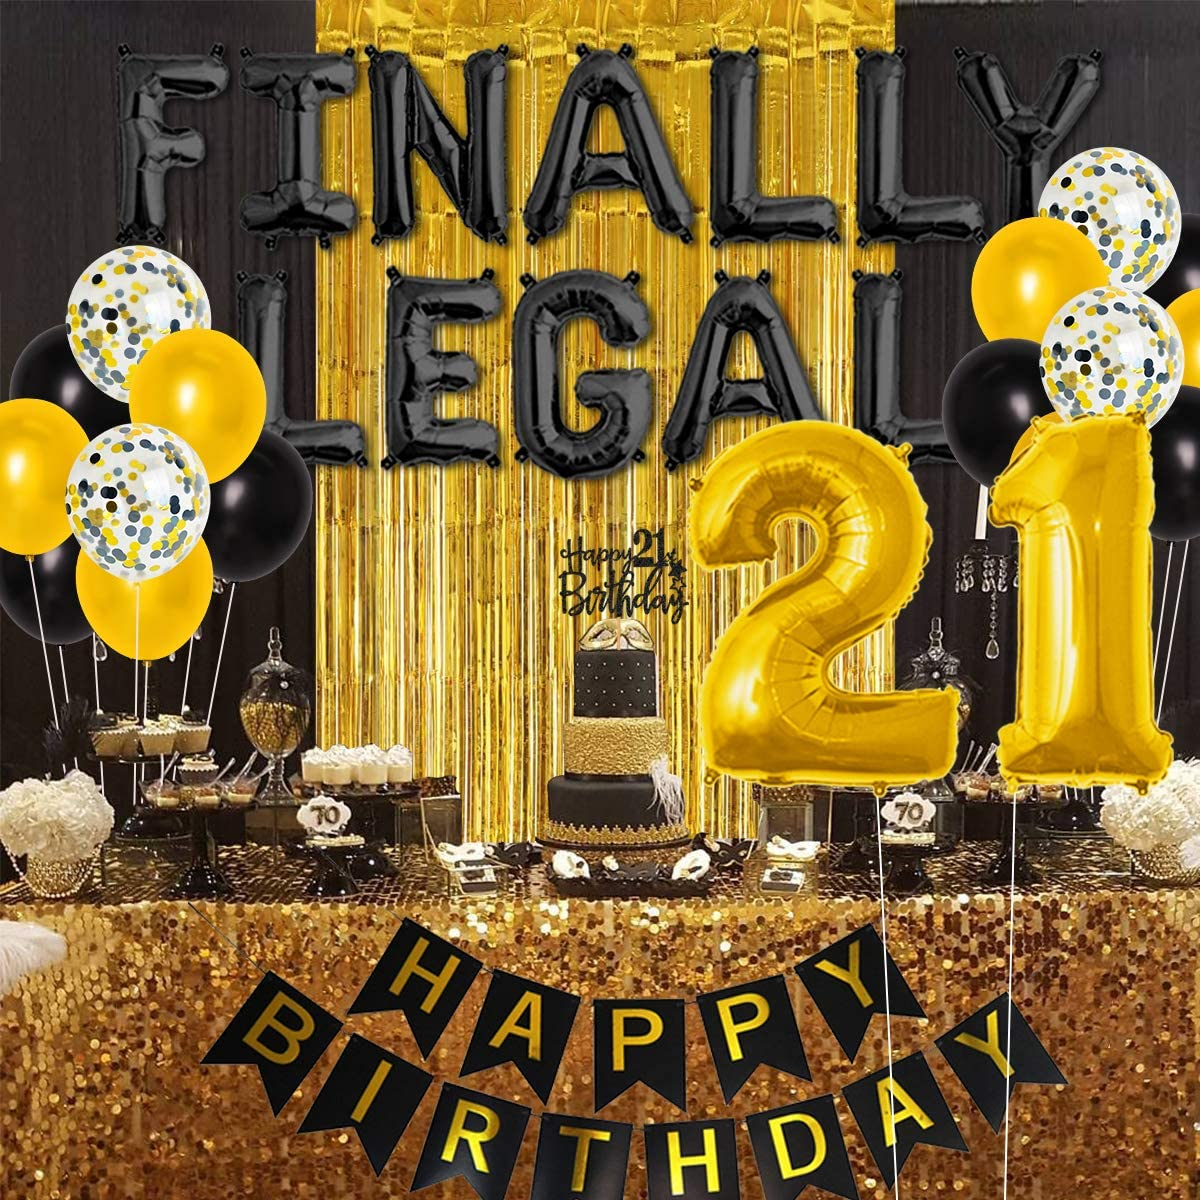 Meuparty Finally 21st Legal Birthday Decorations Balloons Themed Happy 21st Birthday Banner Sash Tinsel Backdrop Black Gold for Him Her